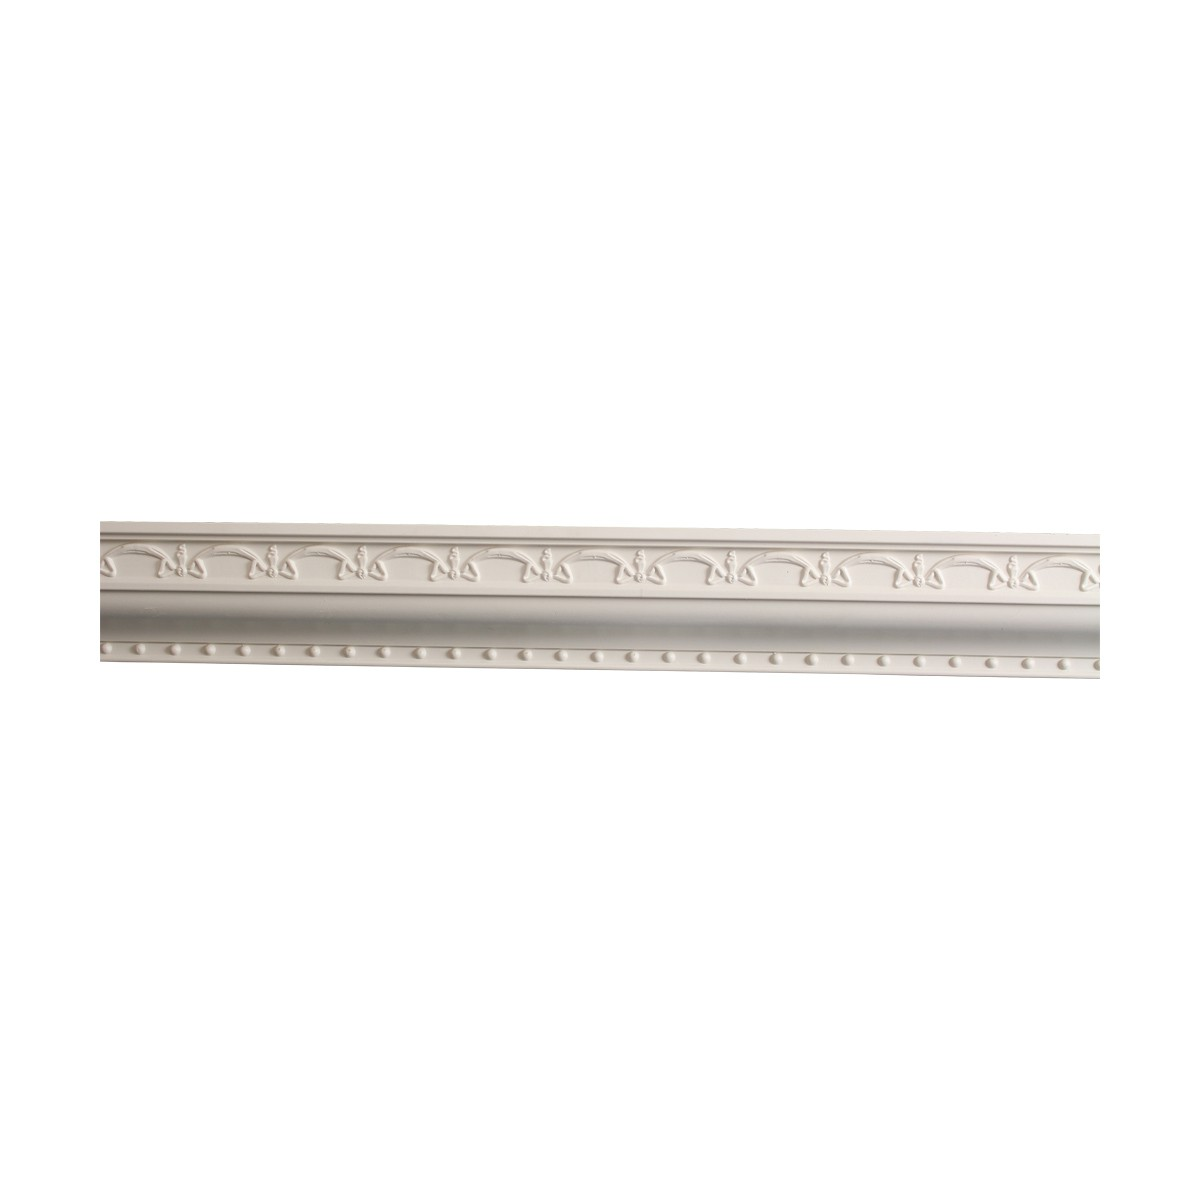 Renovators Supply Ornate Cornice White Urethane Tyringham Design 16 Pieces Totaling 1504 Length White PrePrimed Urethane Crown Cornice Molding Cornice Crown Home Depot Ekena Millwork Molding Wall Ceiling Corner Cornice Crown Cove Molding